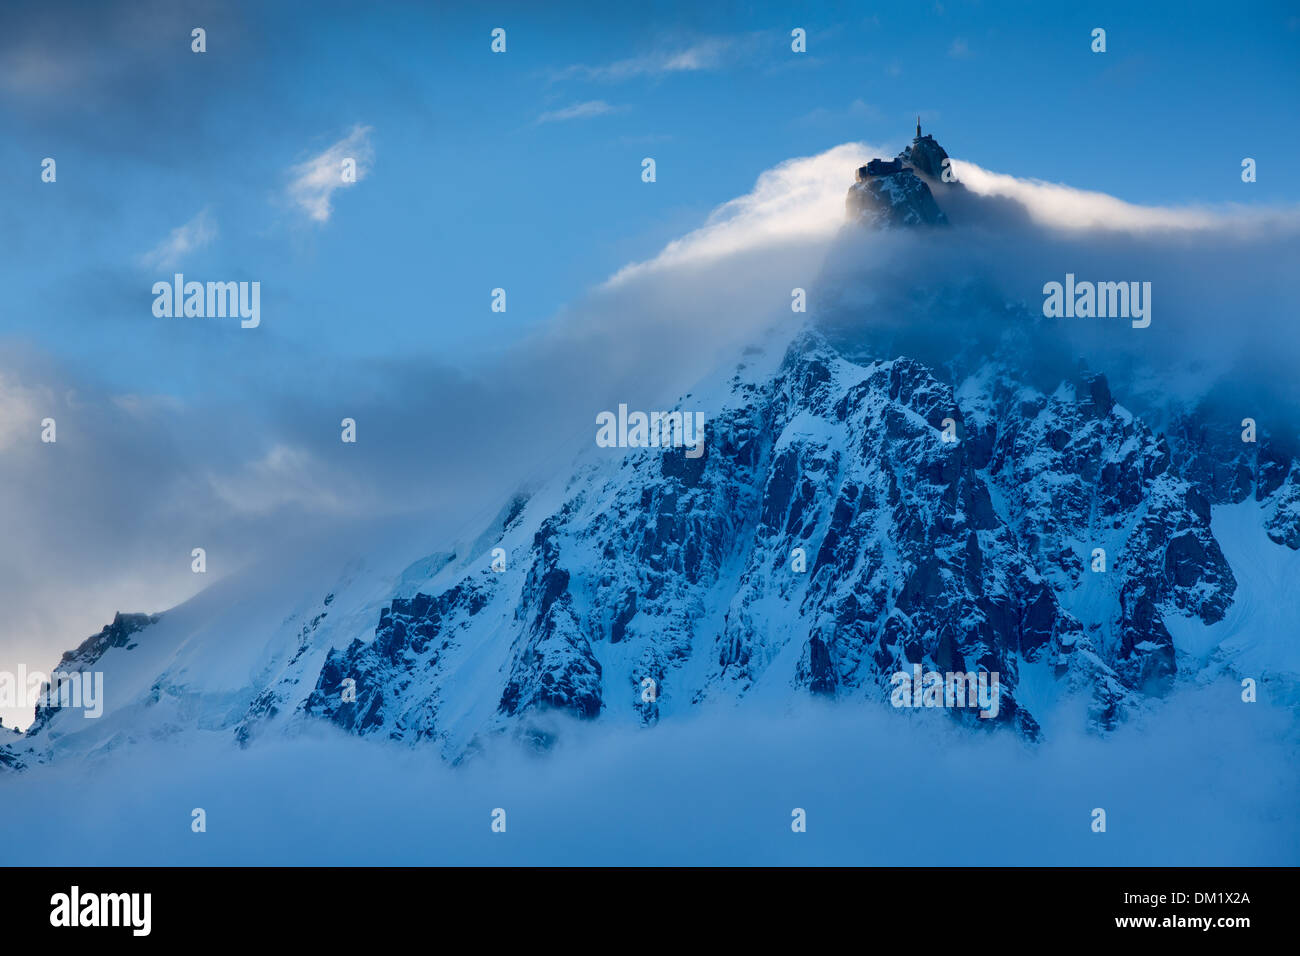 the Aiguille du Midi  appearing through the clouds, Mont Blanc, les Alps, Haute-Savoie, France Stock Photo